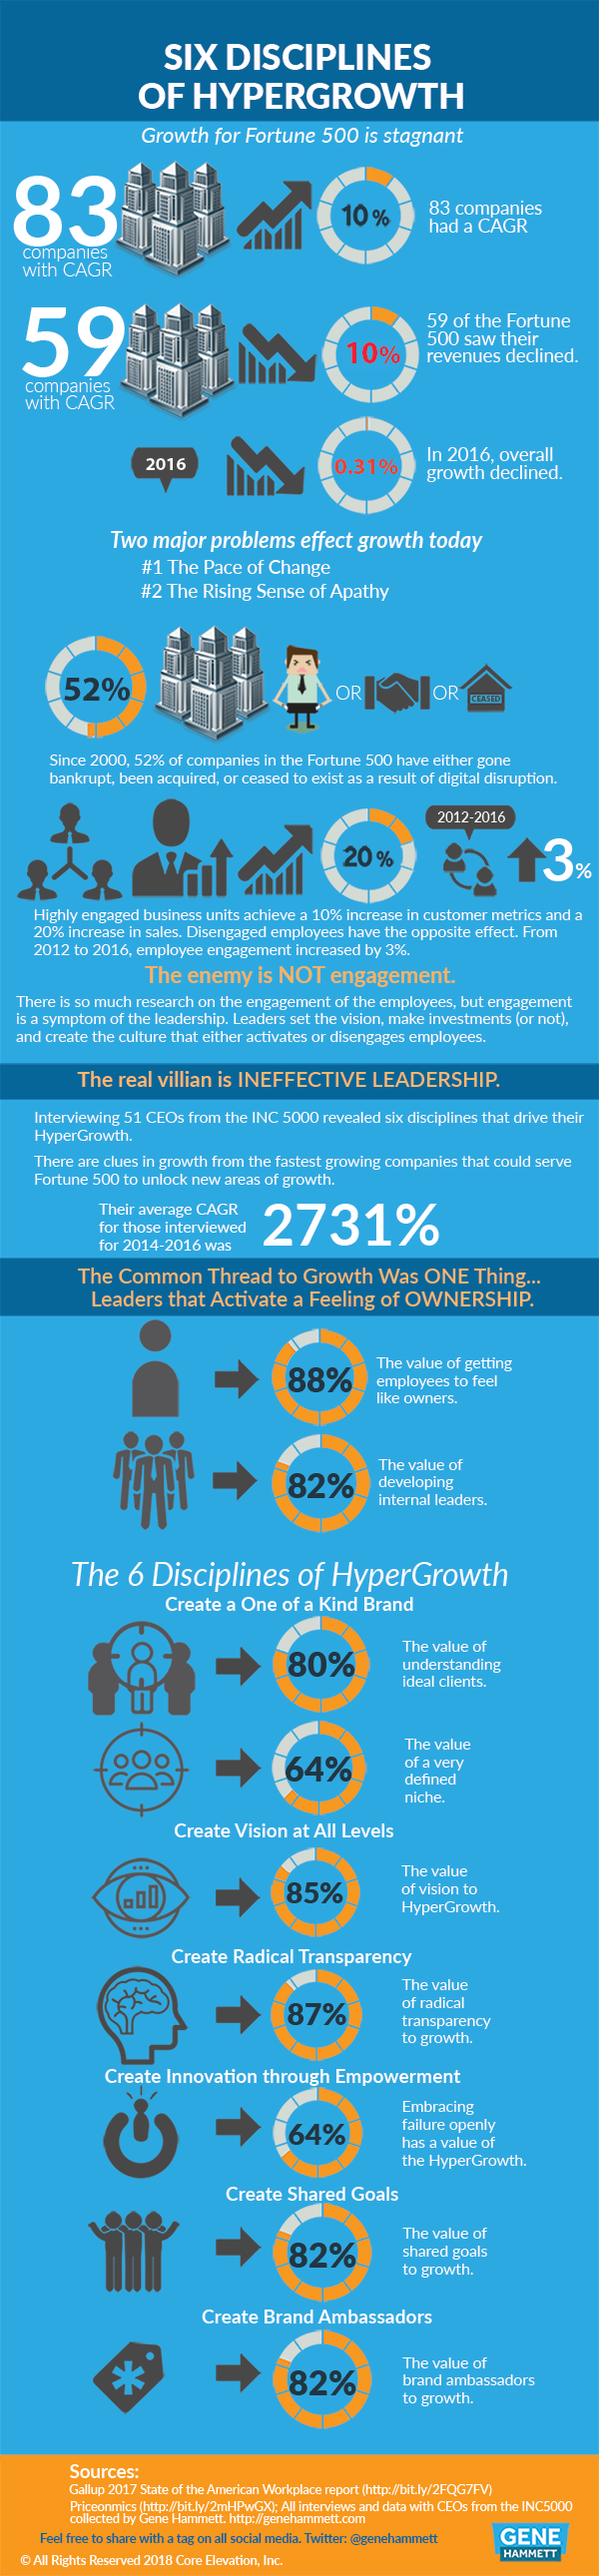 Six Disciplines of HyperGrowth